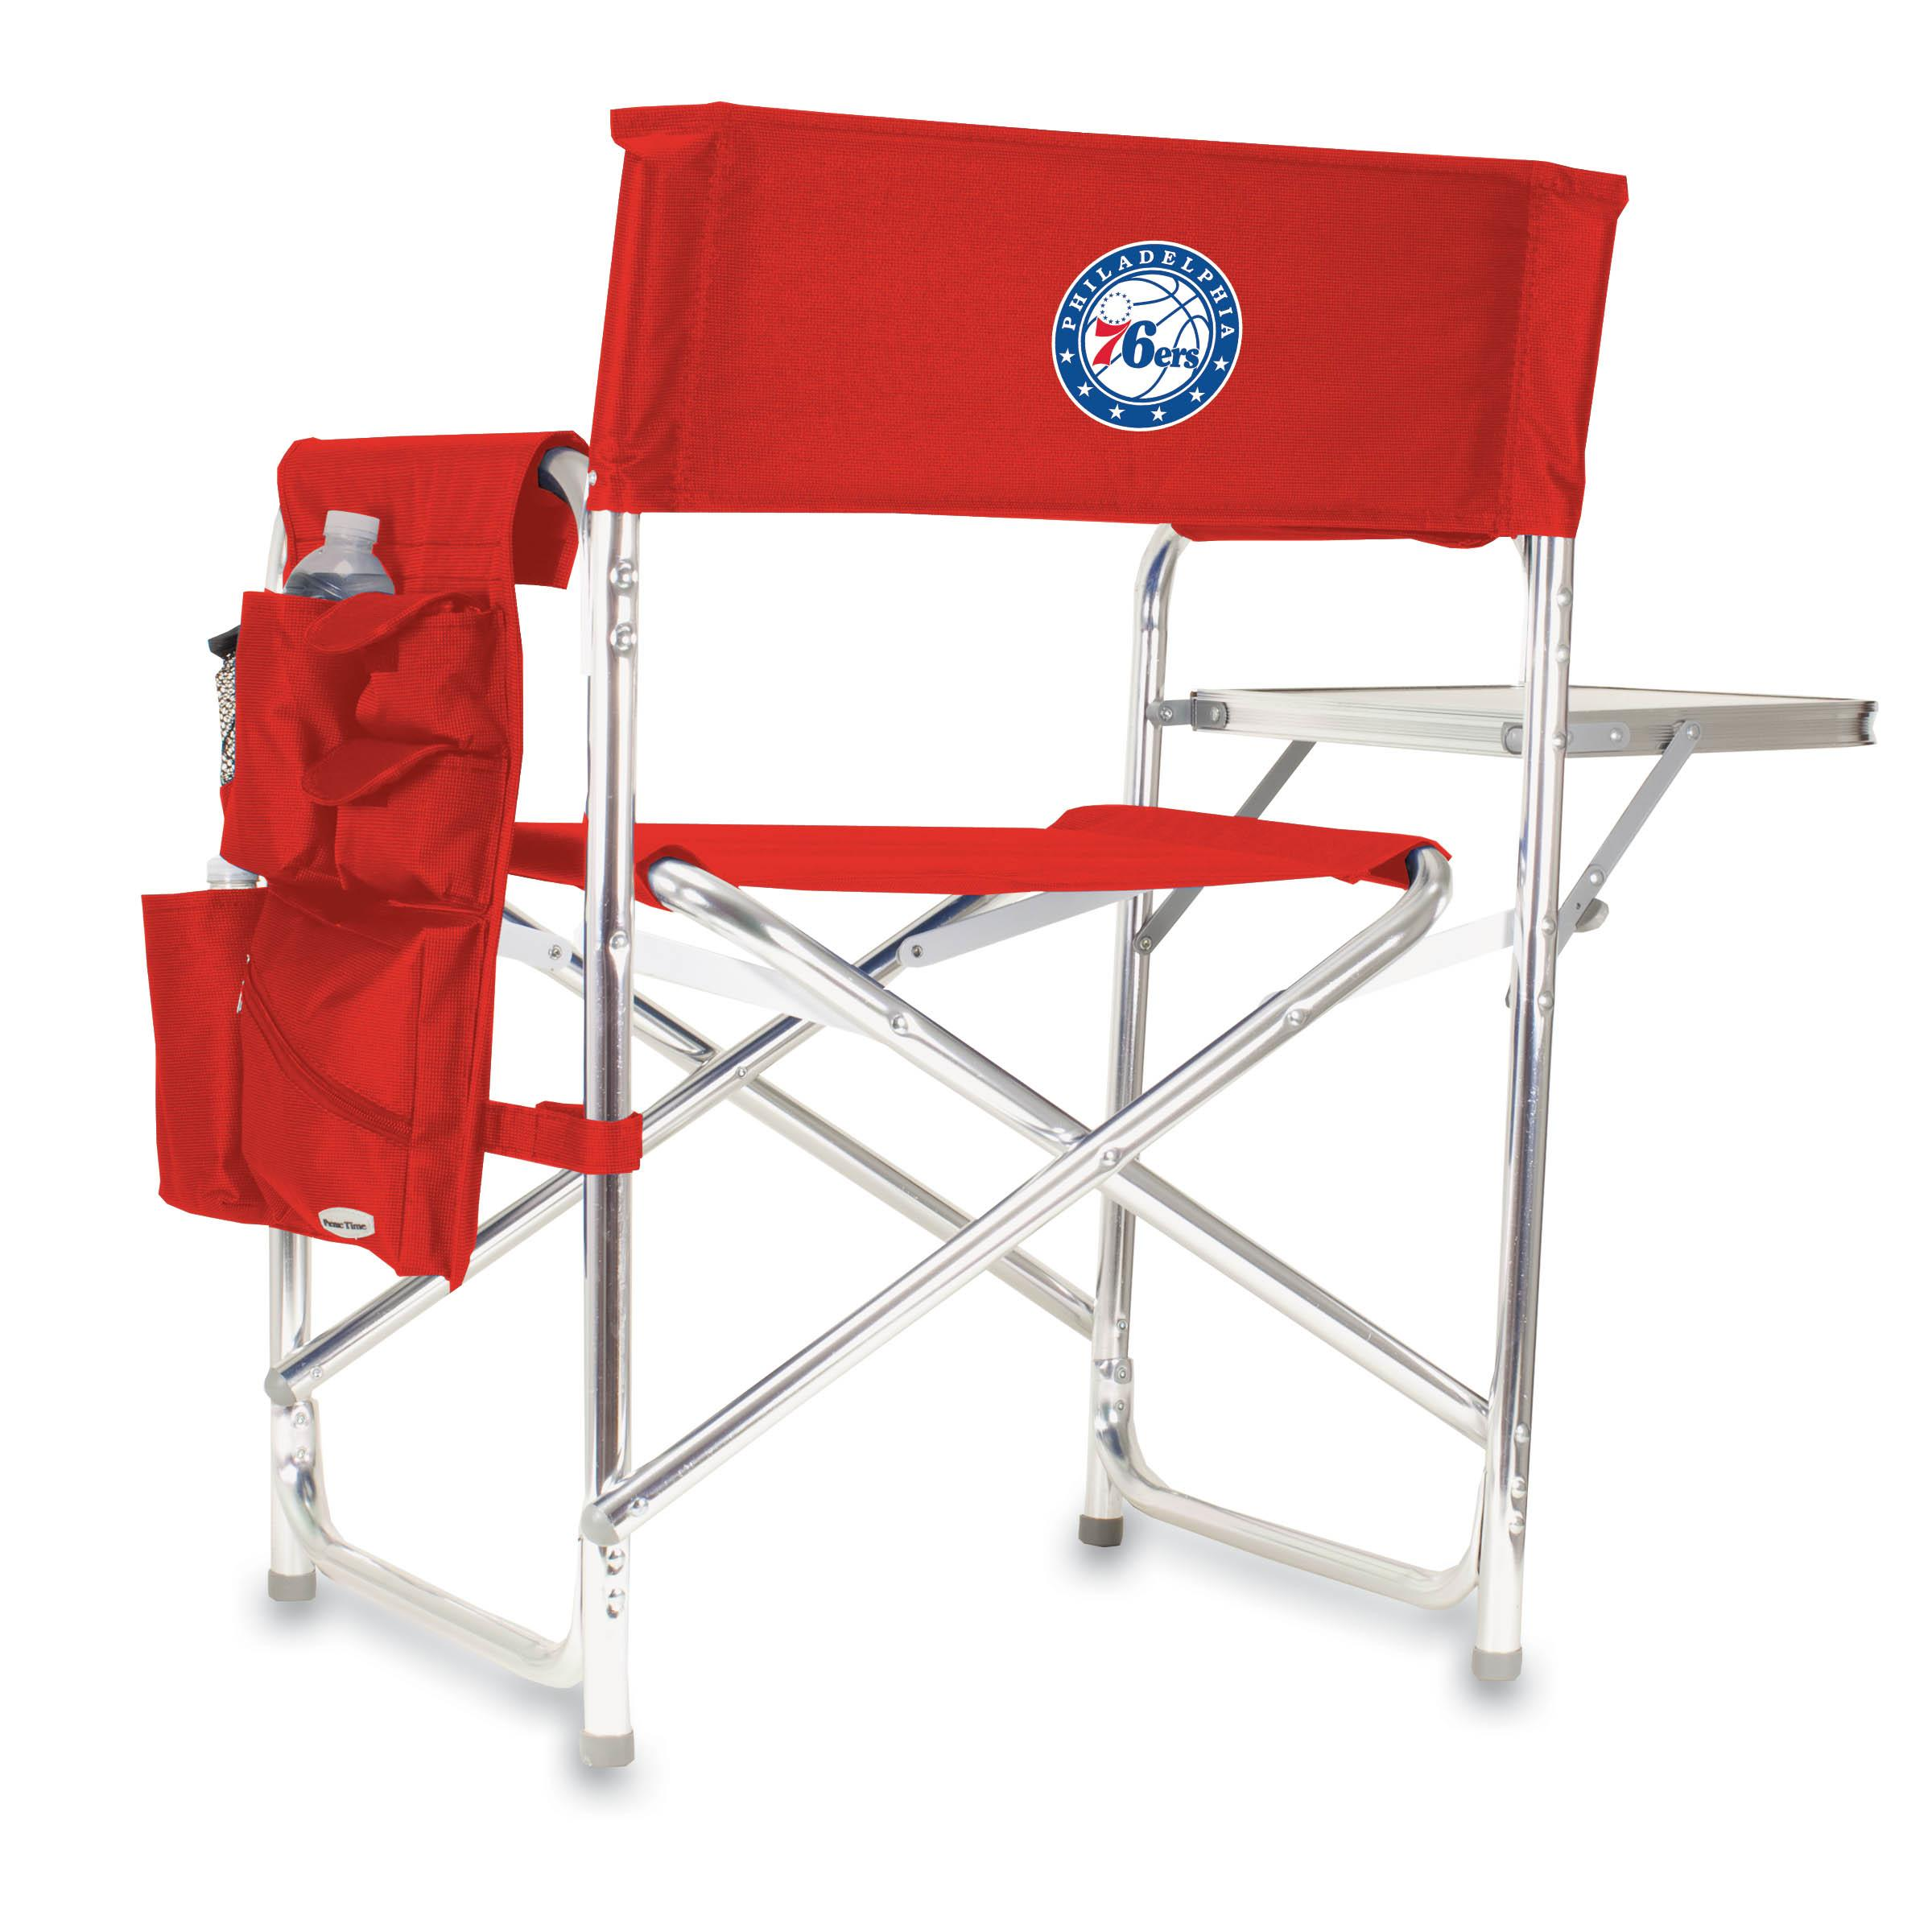 Picnic Time Nba Sports Chair Philadelphia 76ers